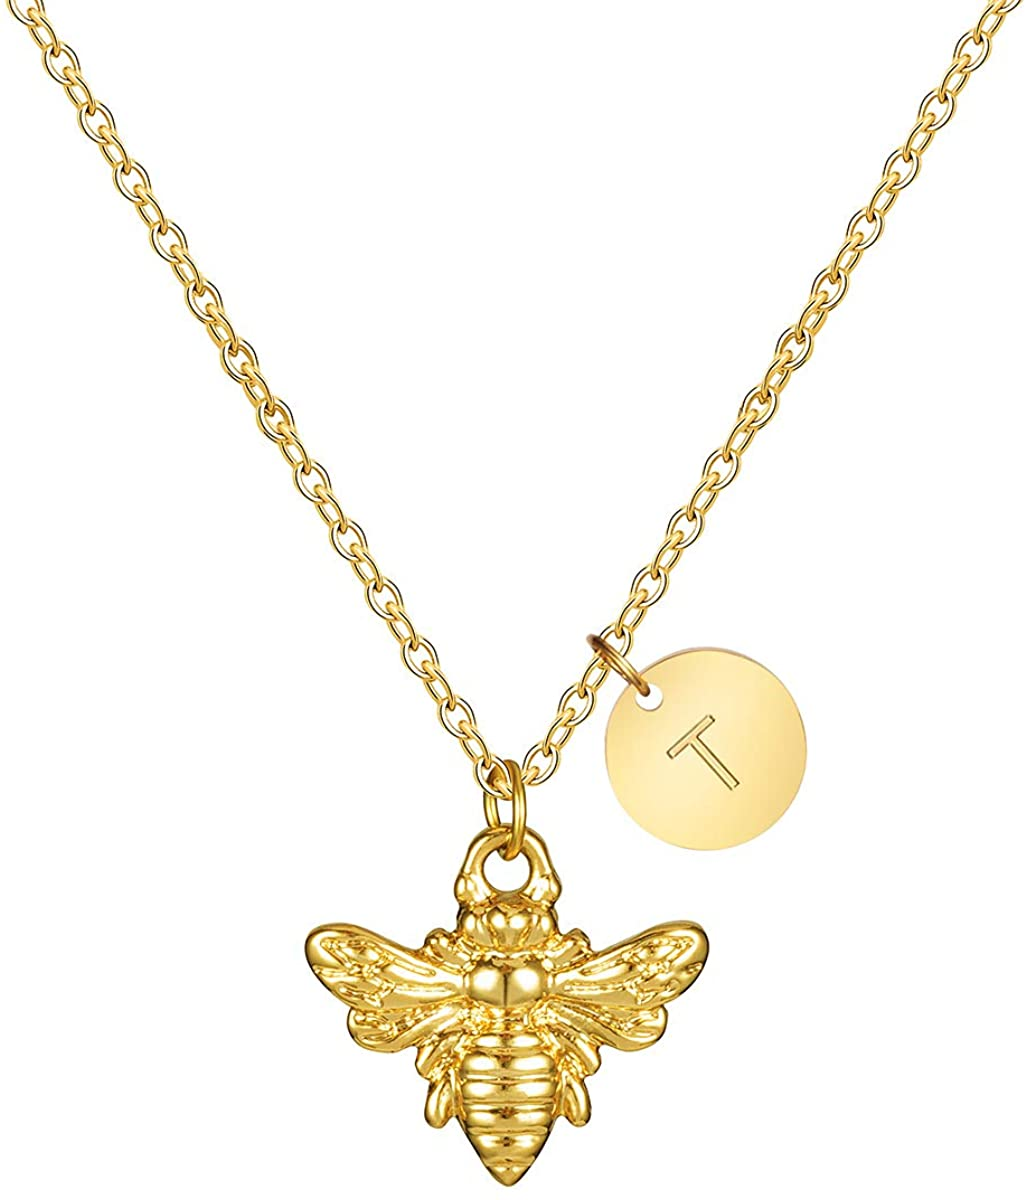 Joycuff 18K Gold Dainty Bee Necklace Personalized for Women Sister Mom Best Friend Wife Daughter Coworker Cute Initial Disc Charm Jewelry